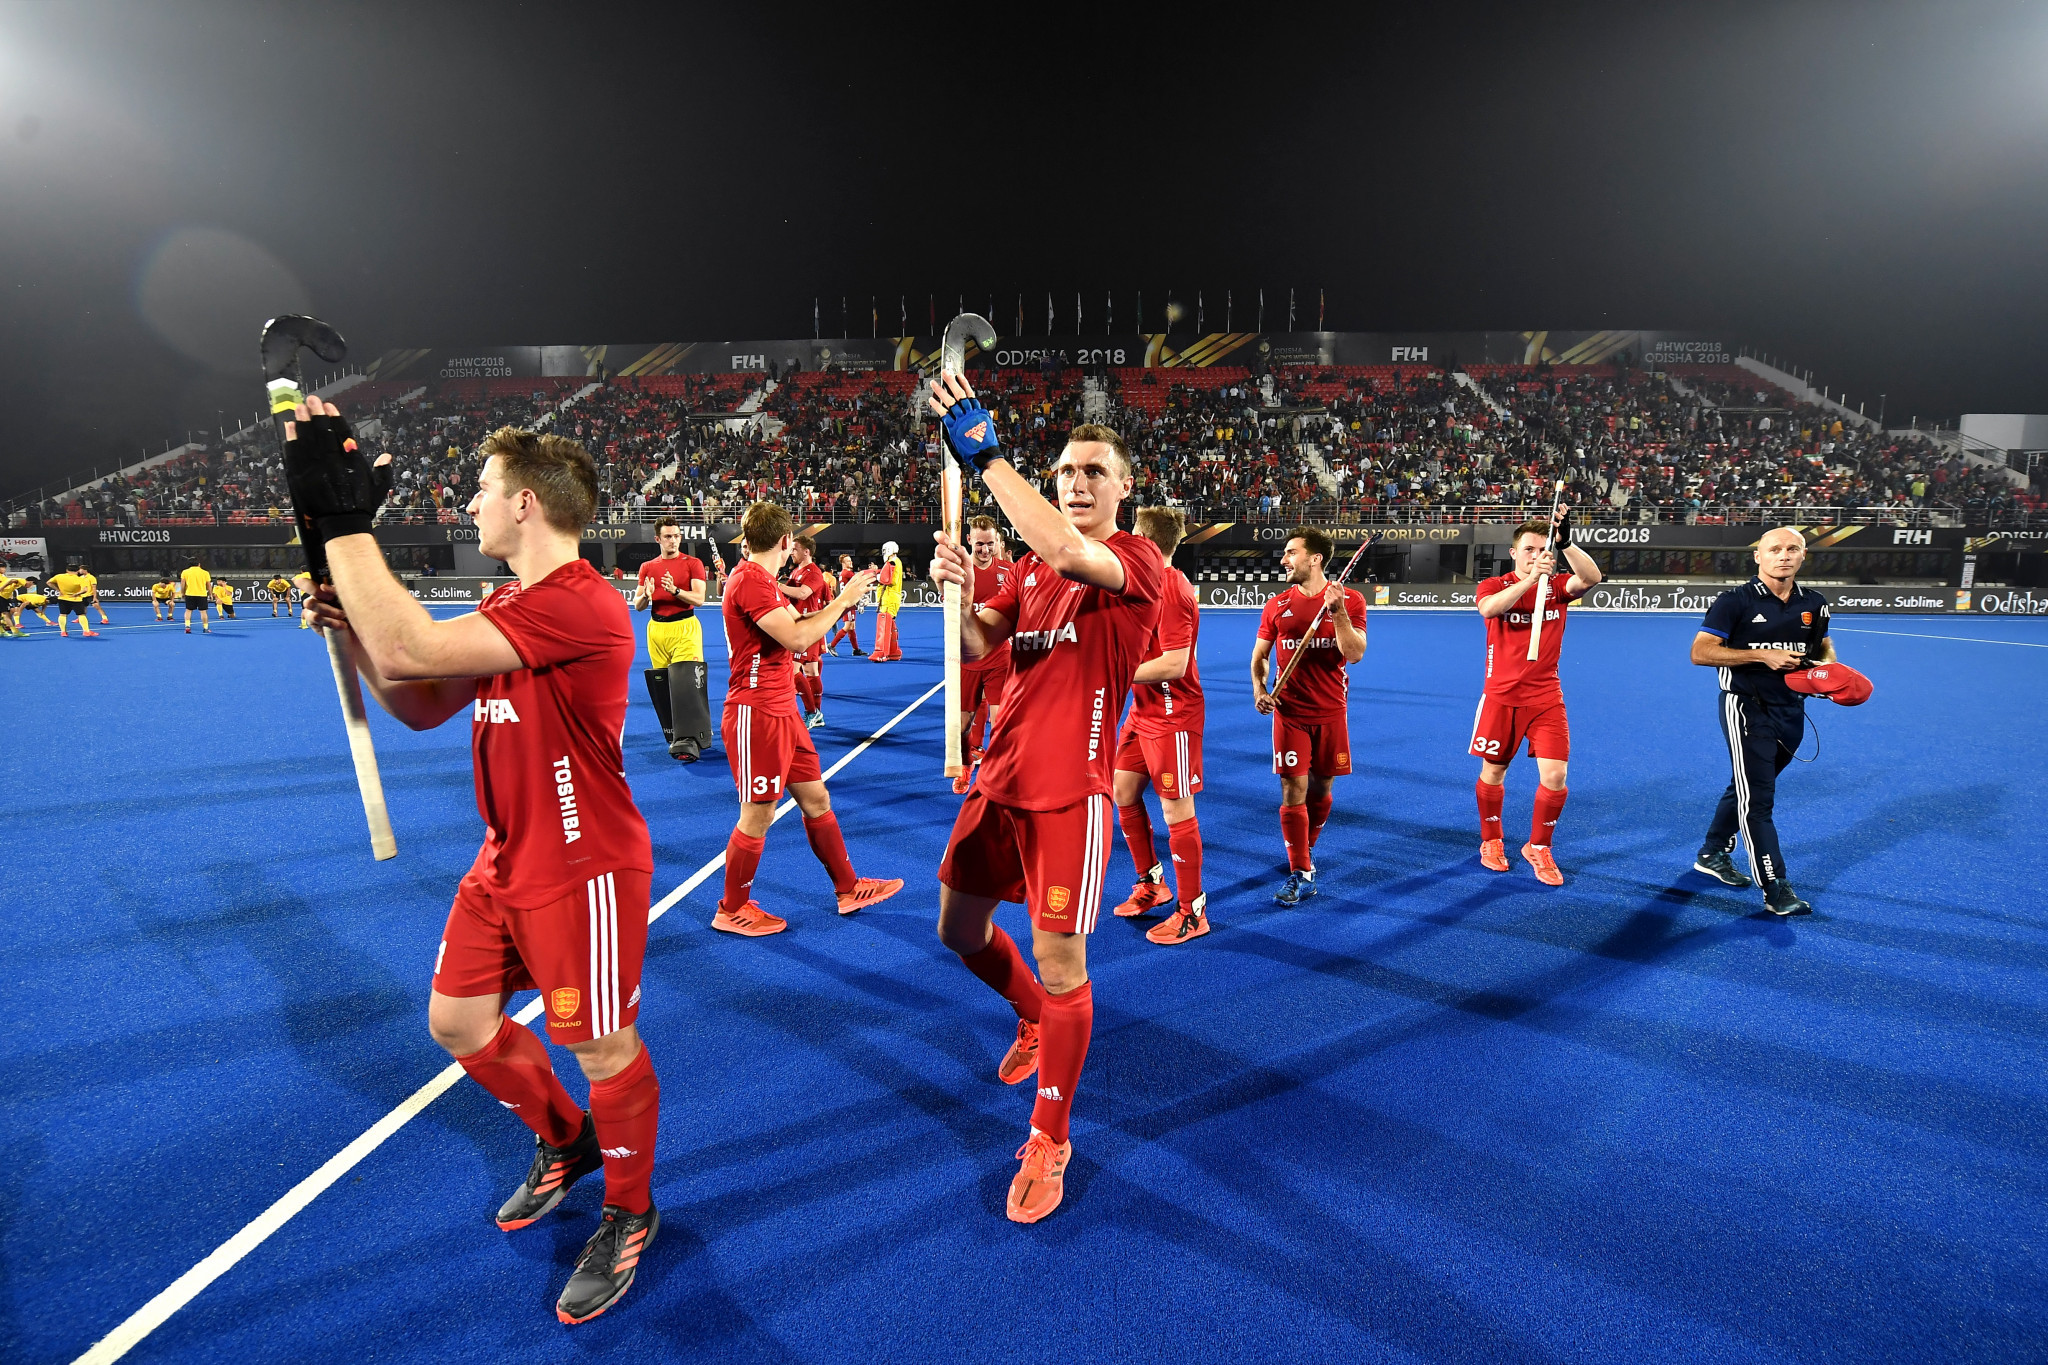 England withdraws from hockey's Men's Junior World Cup after new quarantine rules in India